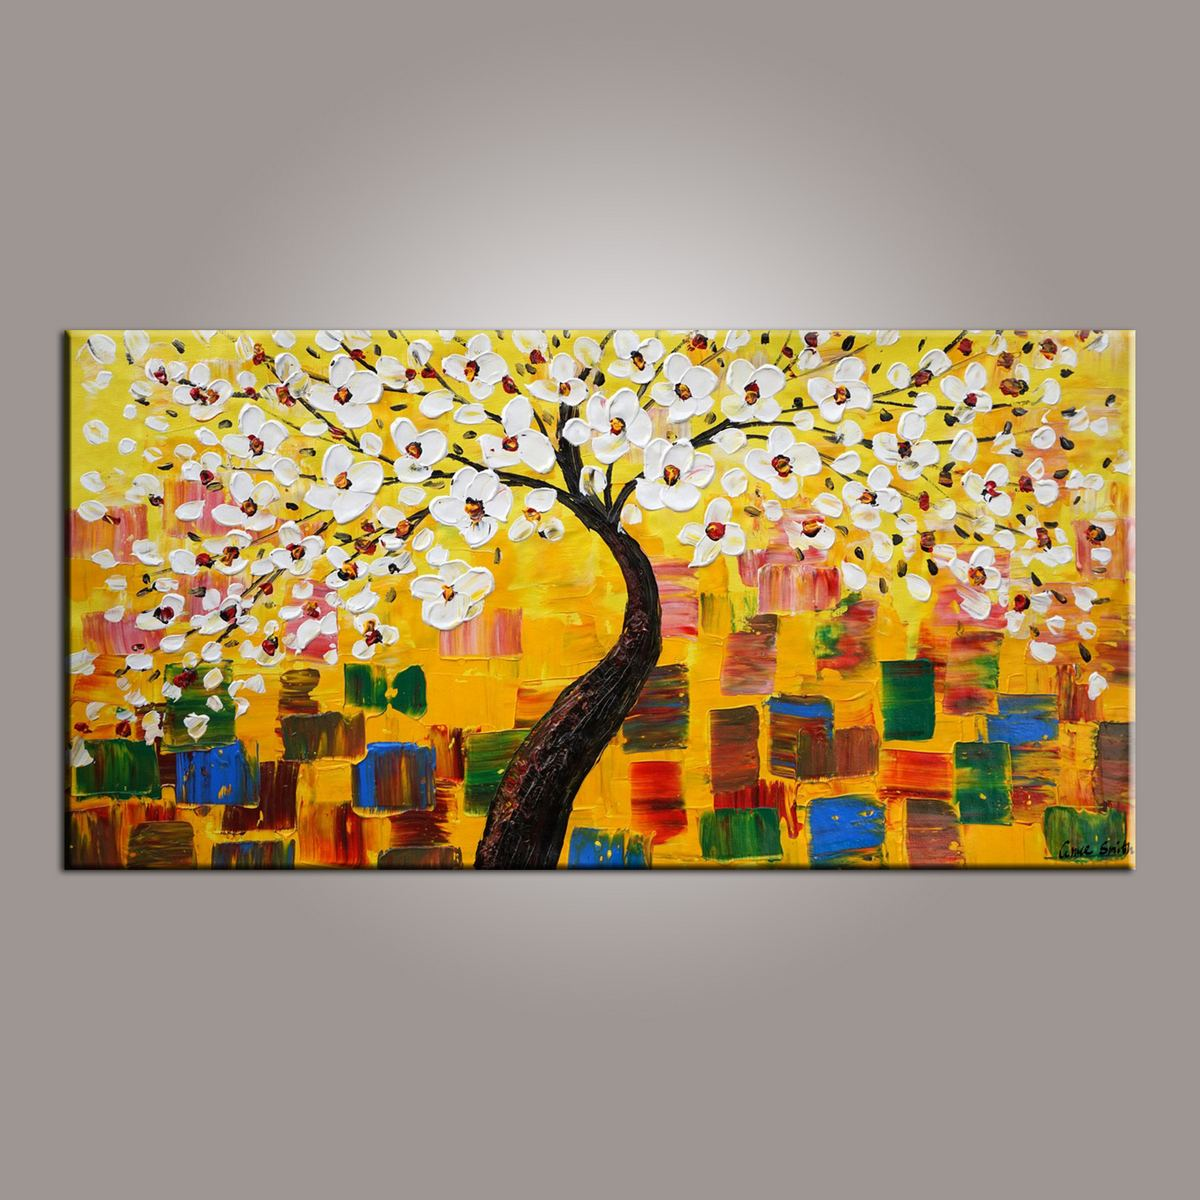 painting on sale, flower tree painting, abstract art painting